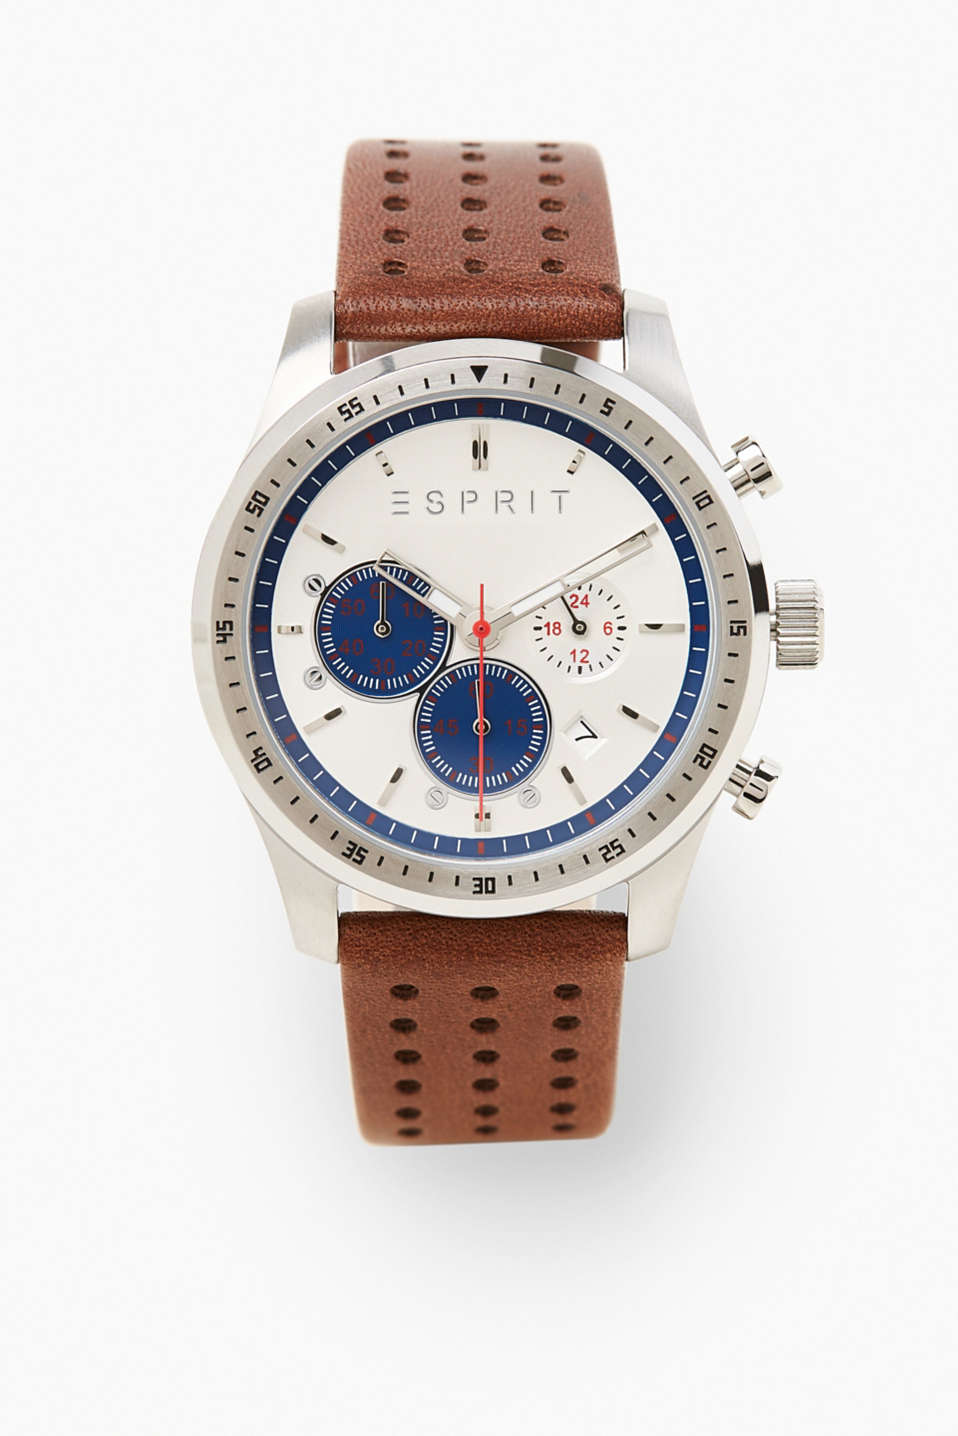 Esprit - Chrono with a perforated leather wrist strap